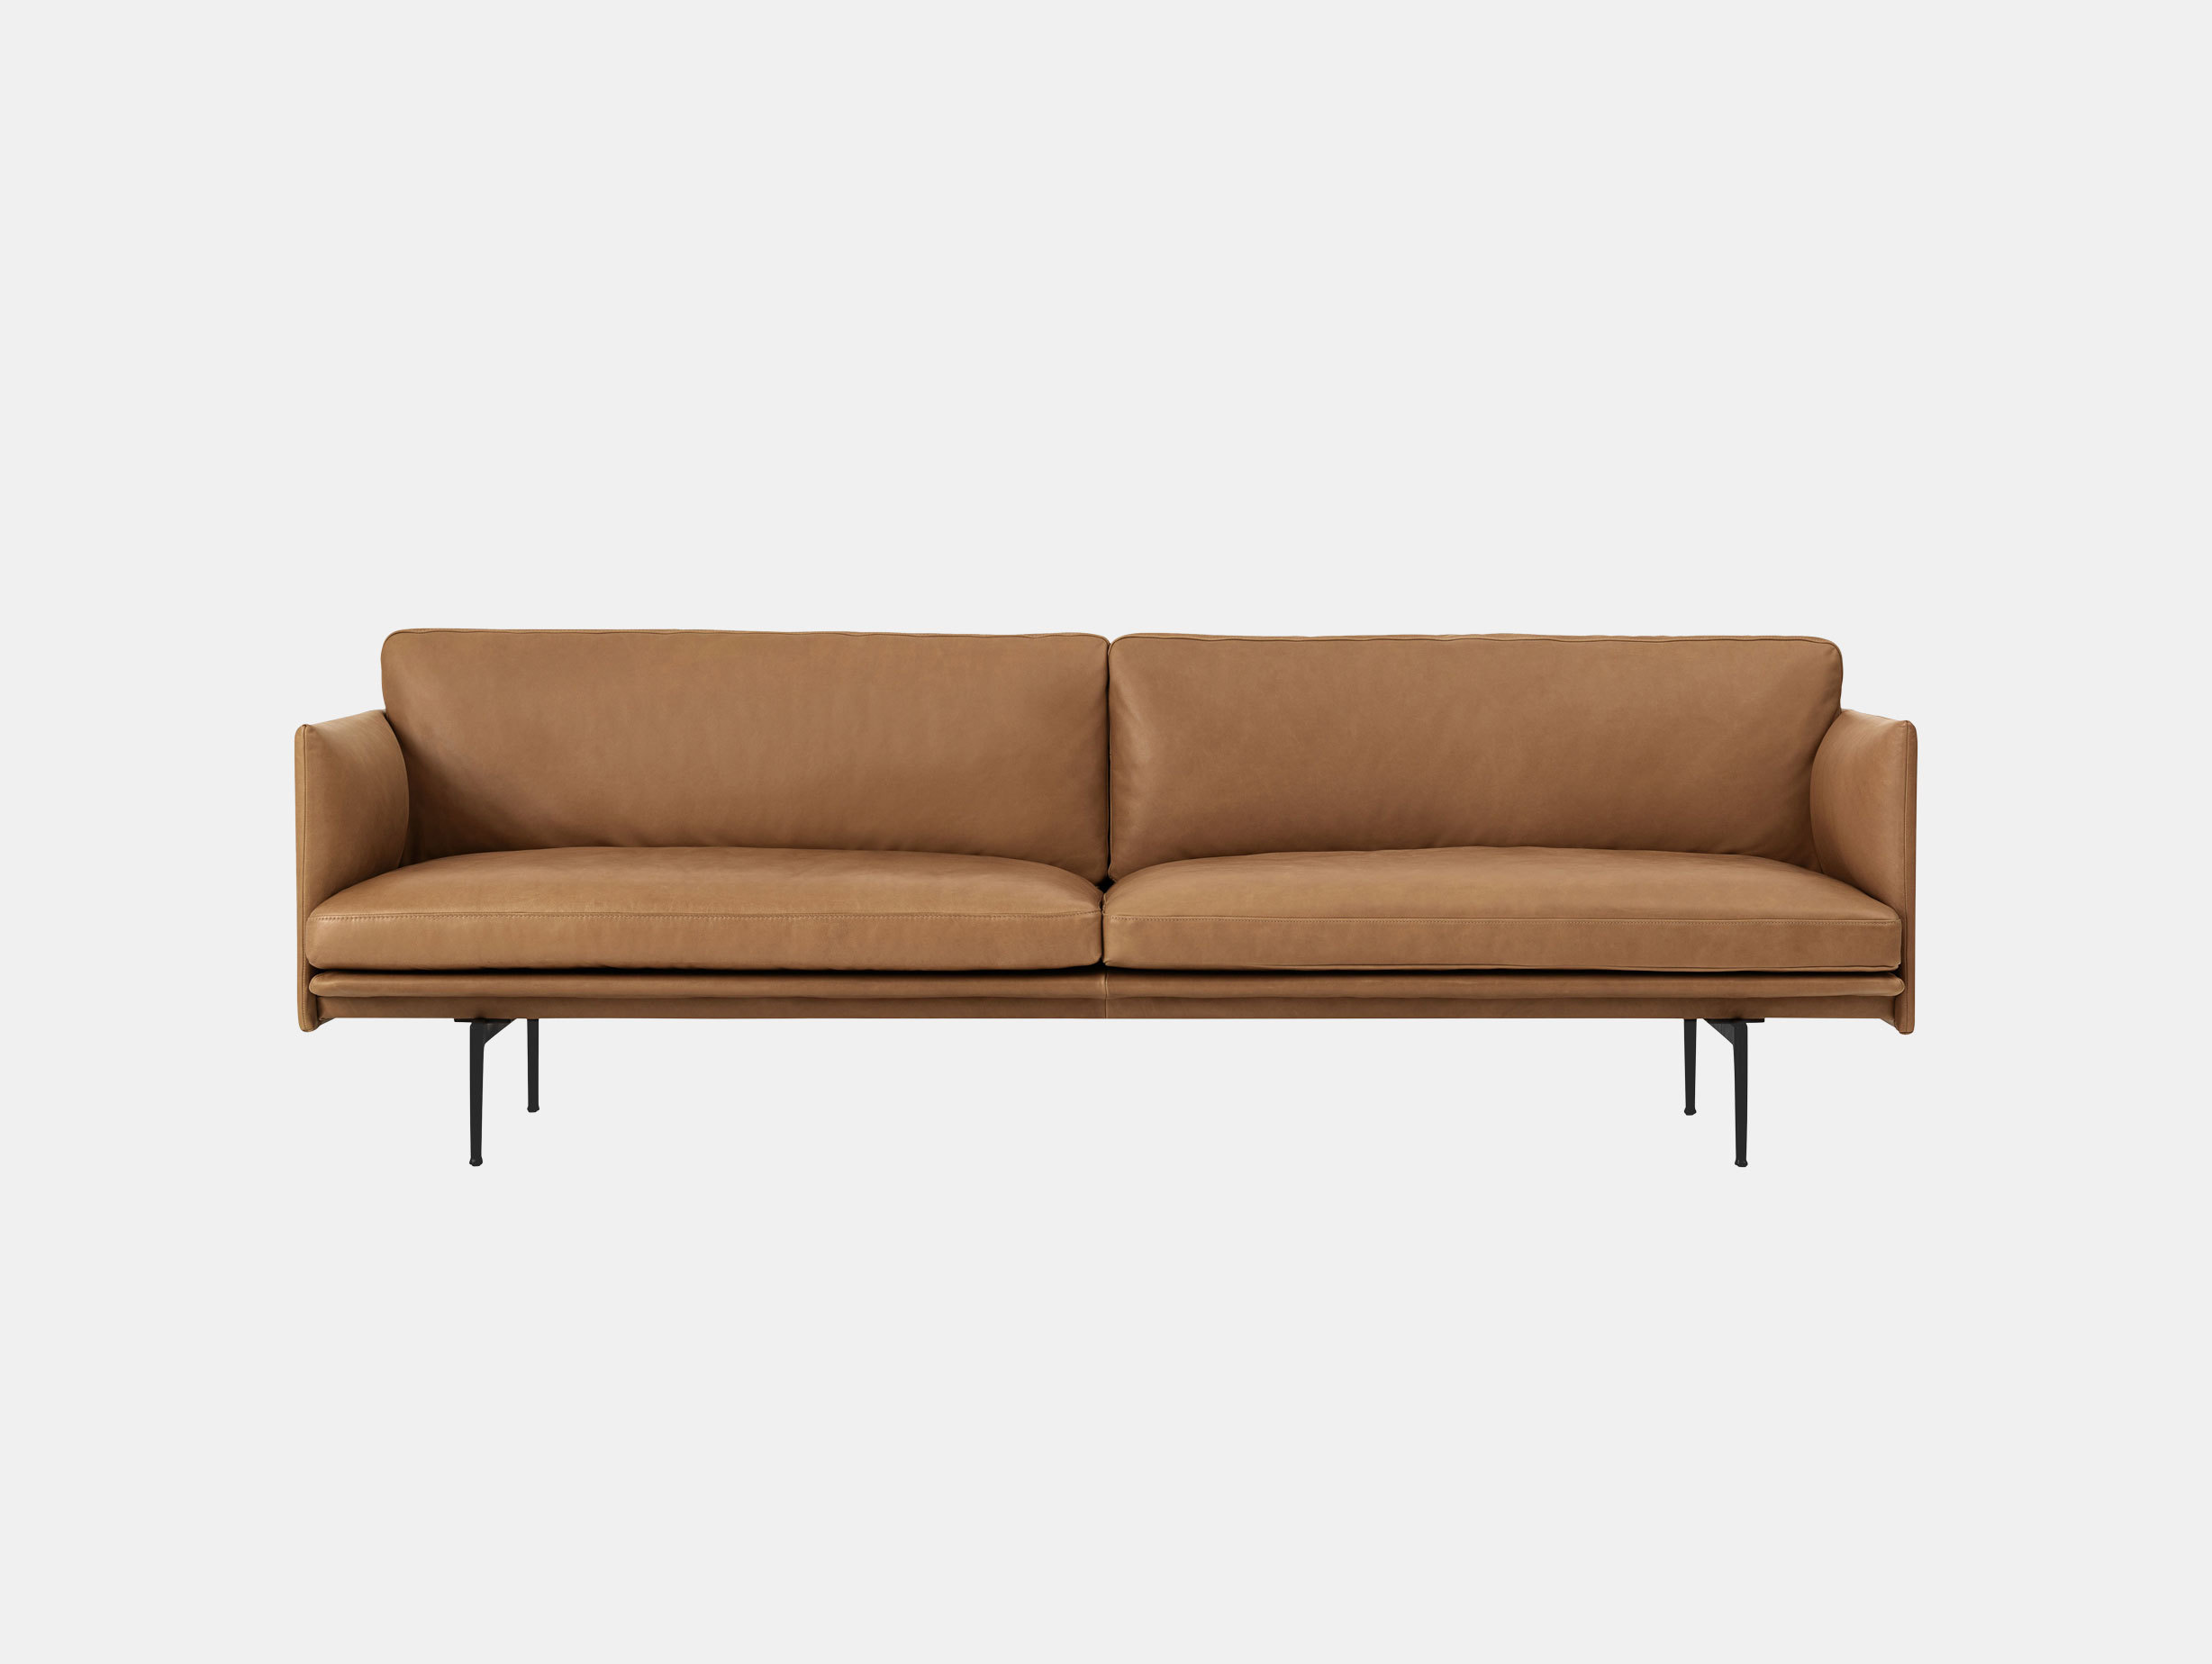 Outline Sofa image 8